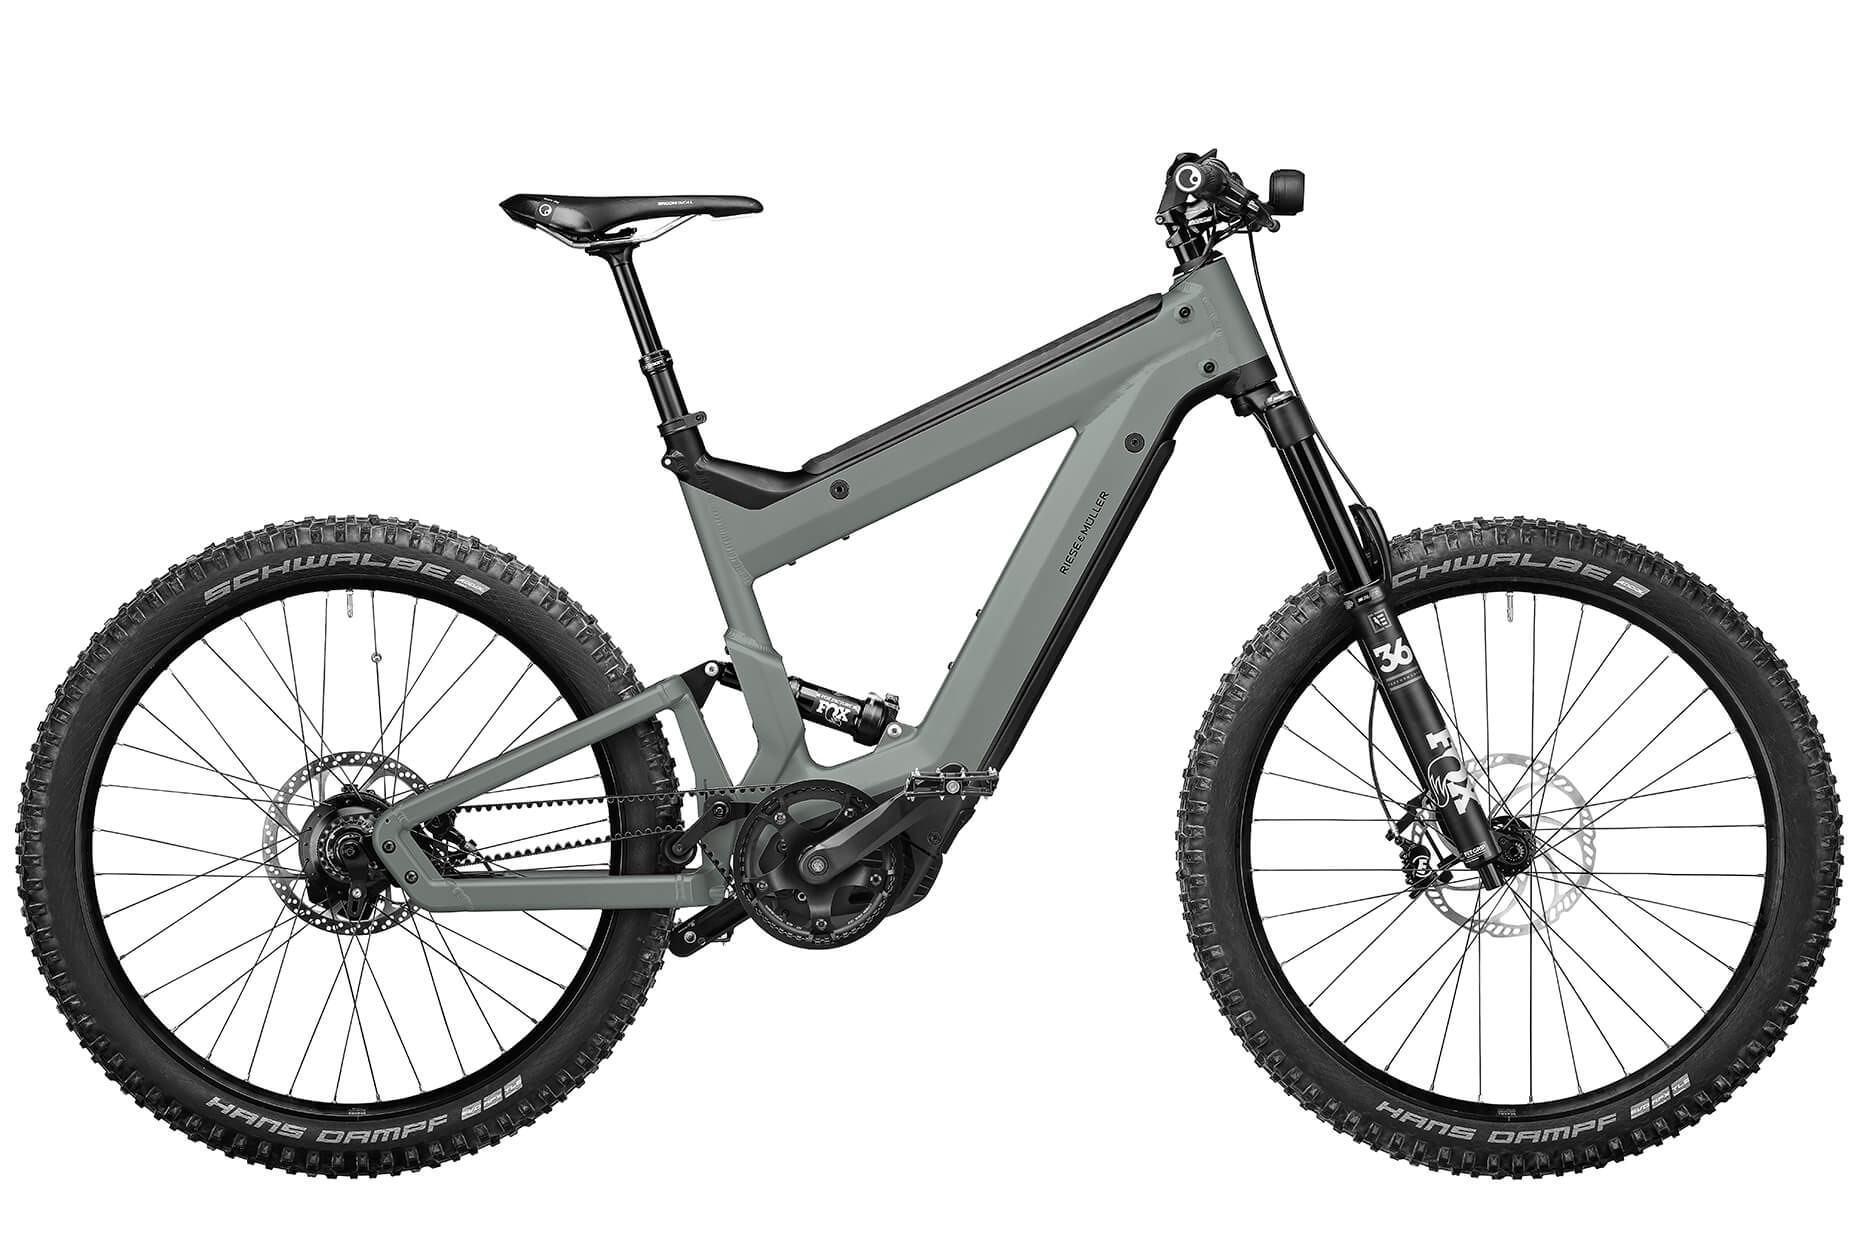 2021 Riese and Muller Superdelite Mountain Rohloff Full Suspension EBike